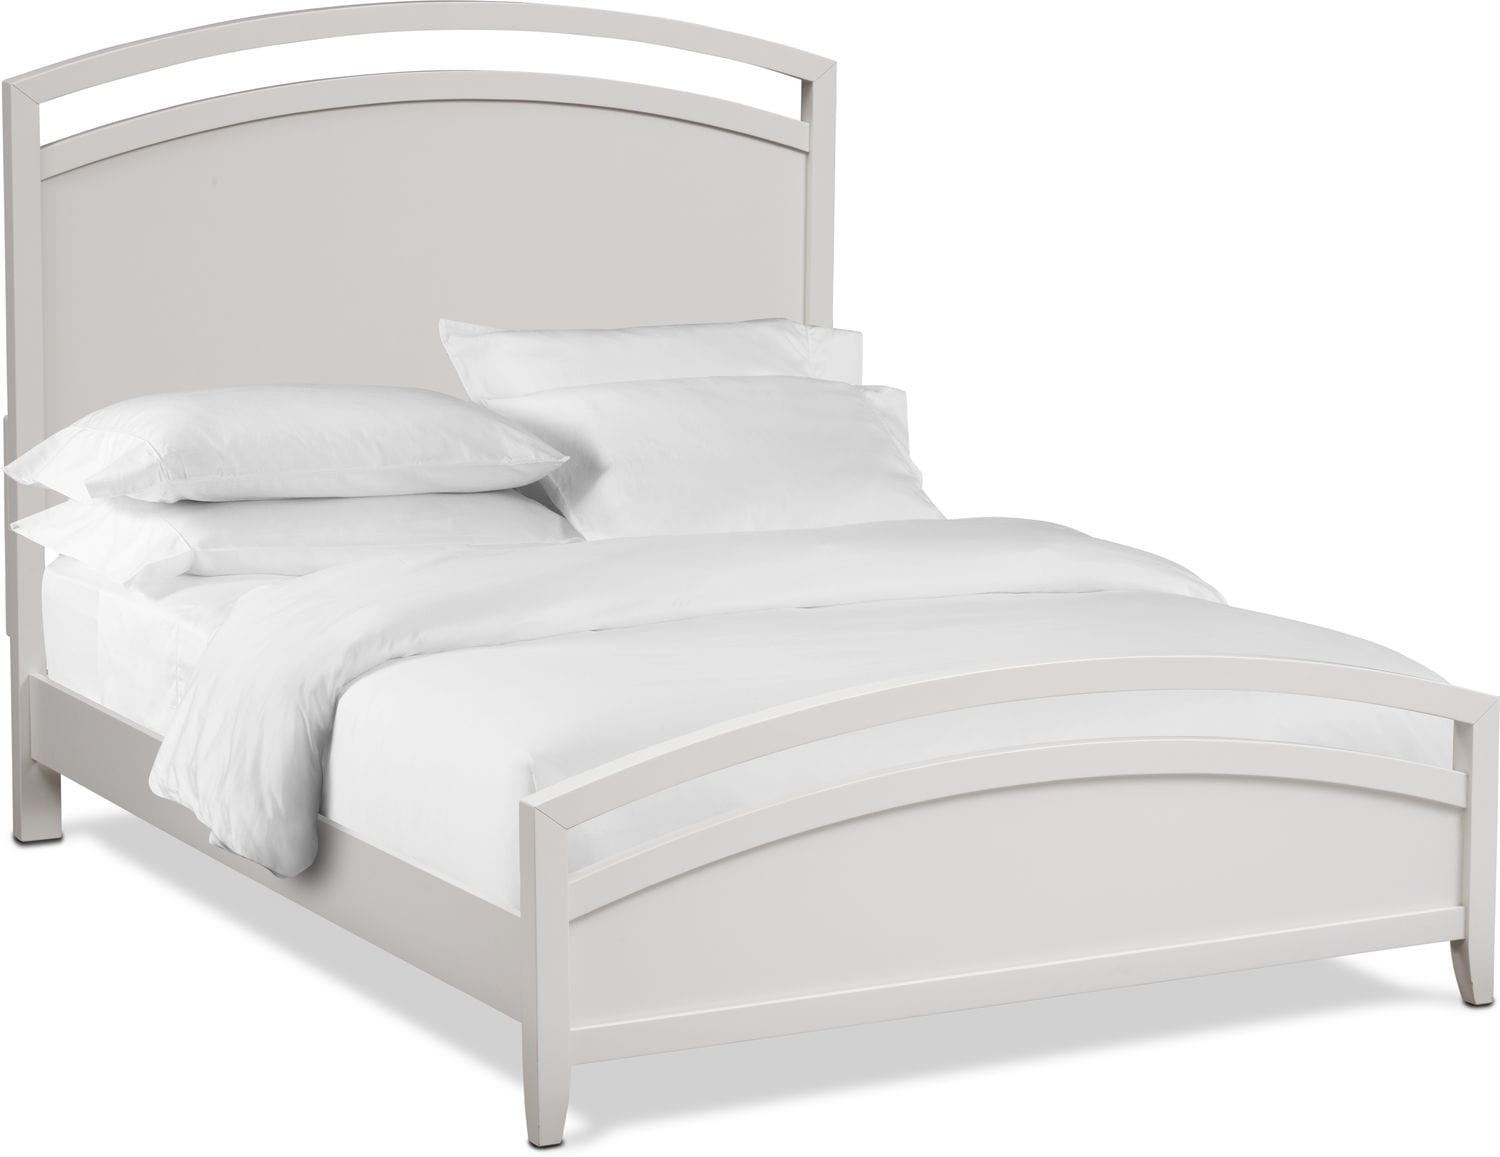 Bedroom Furniture - Emerson Panel Bed